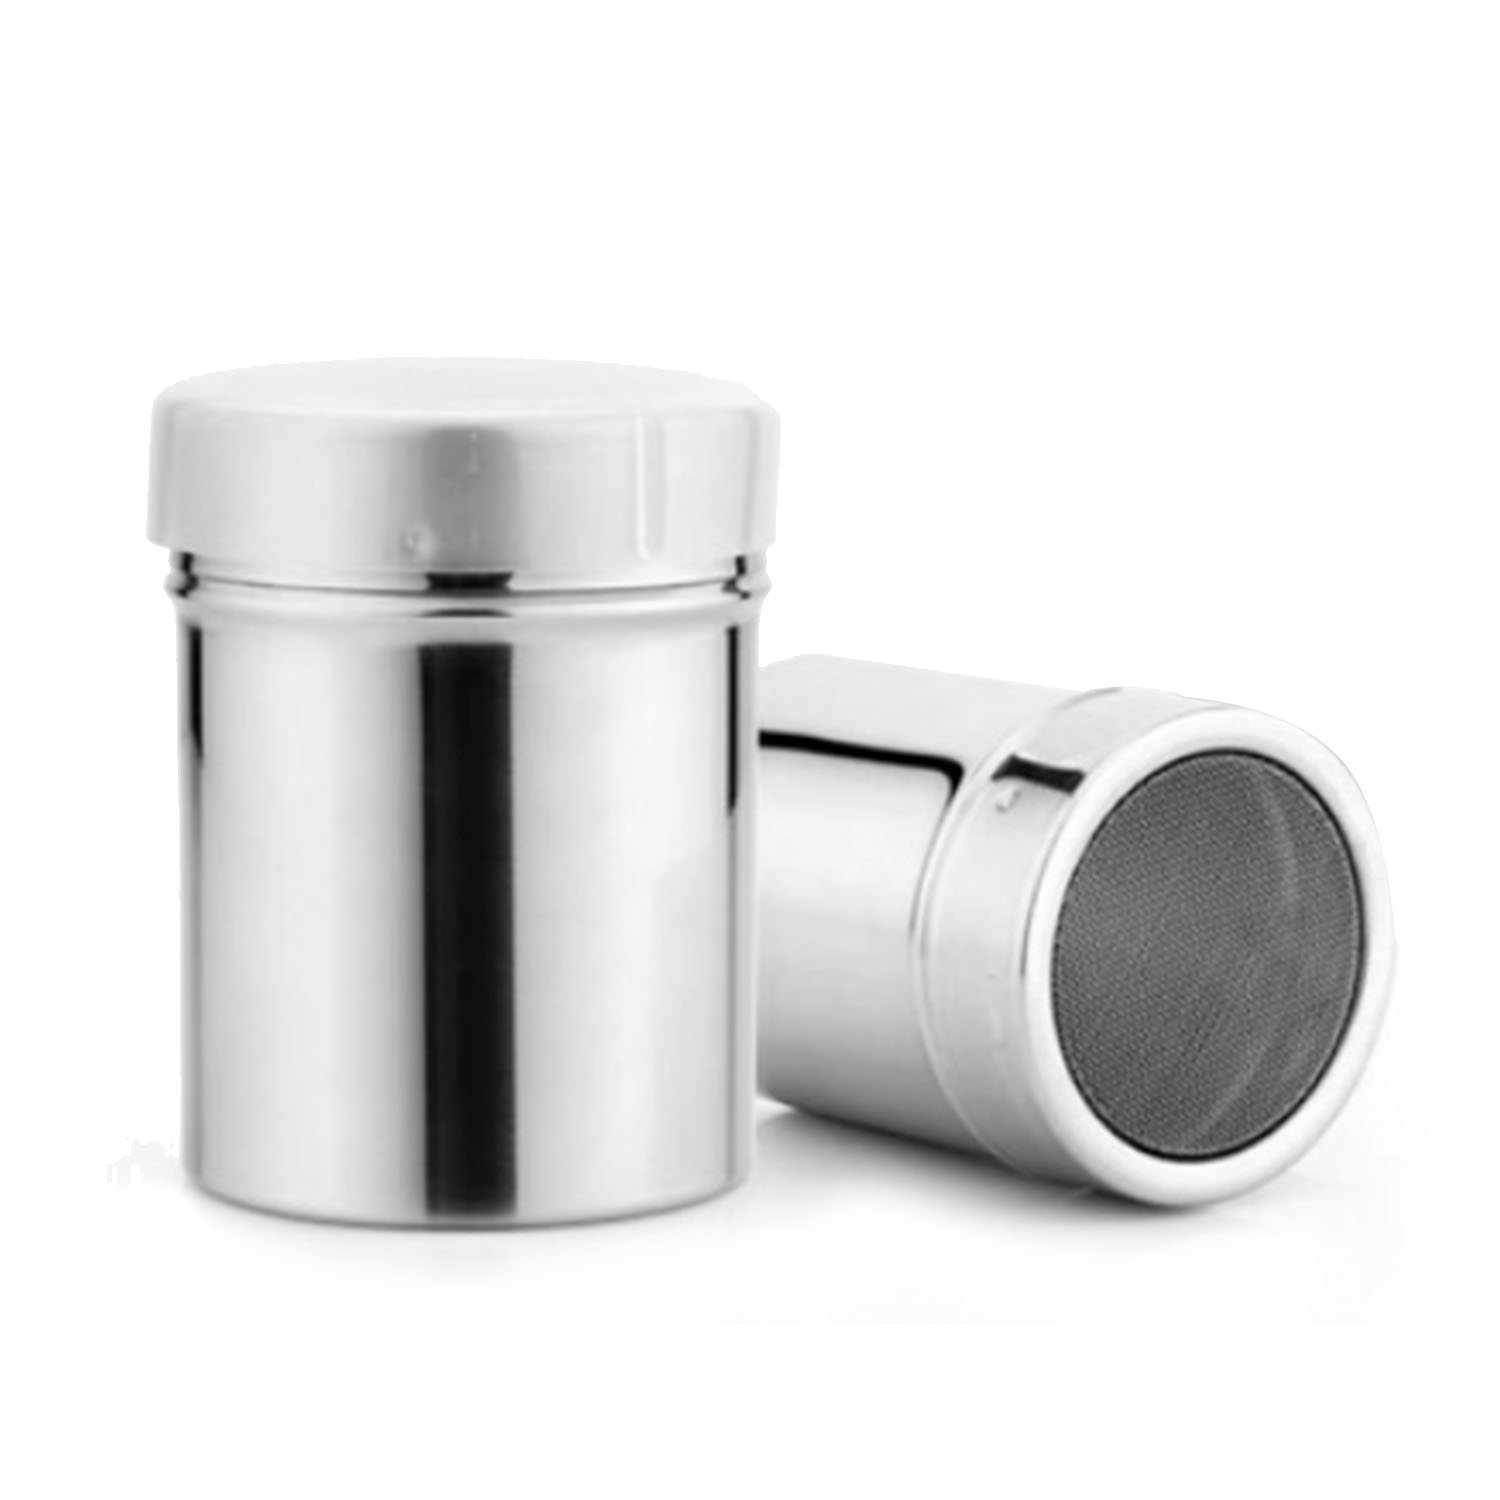 2 PCS Stainless Steel Icing Sugar Powder Cocoa Flour Sifter Shaker Tube Coffee Cooking Tools Cruet Kitchen Supplies